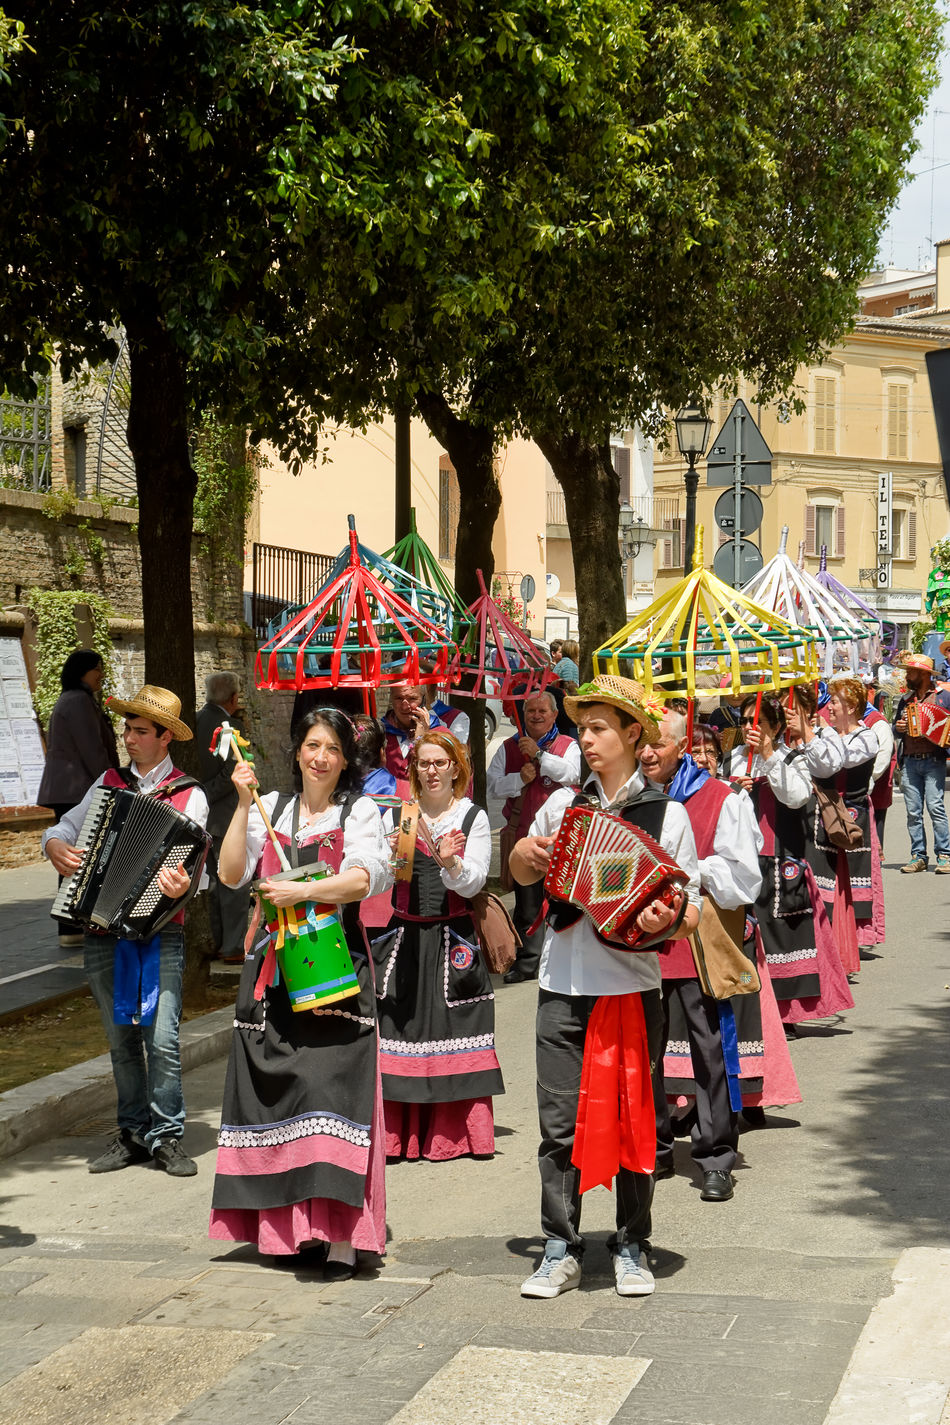 Chieti, Italy - May 08, 2016: folk parade in the streets of Chieti Abruzzese Abruzzo Chieti Dress Folk Folklore Organetto Parade People Performer  Player Putipu Street Village